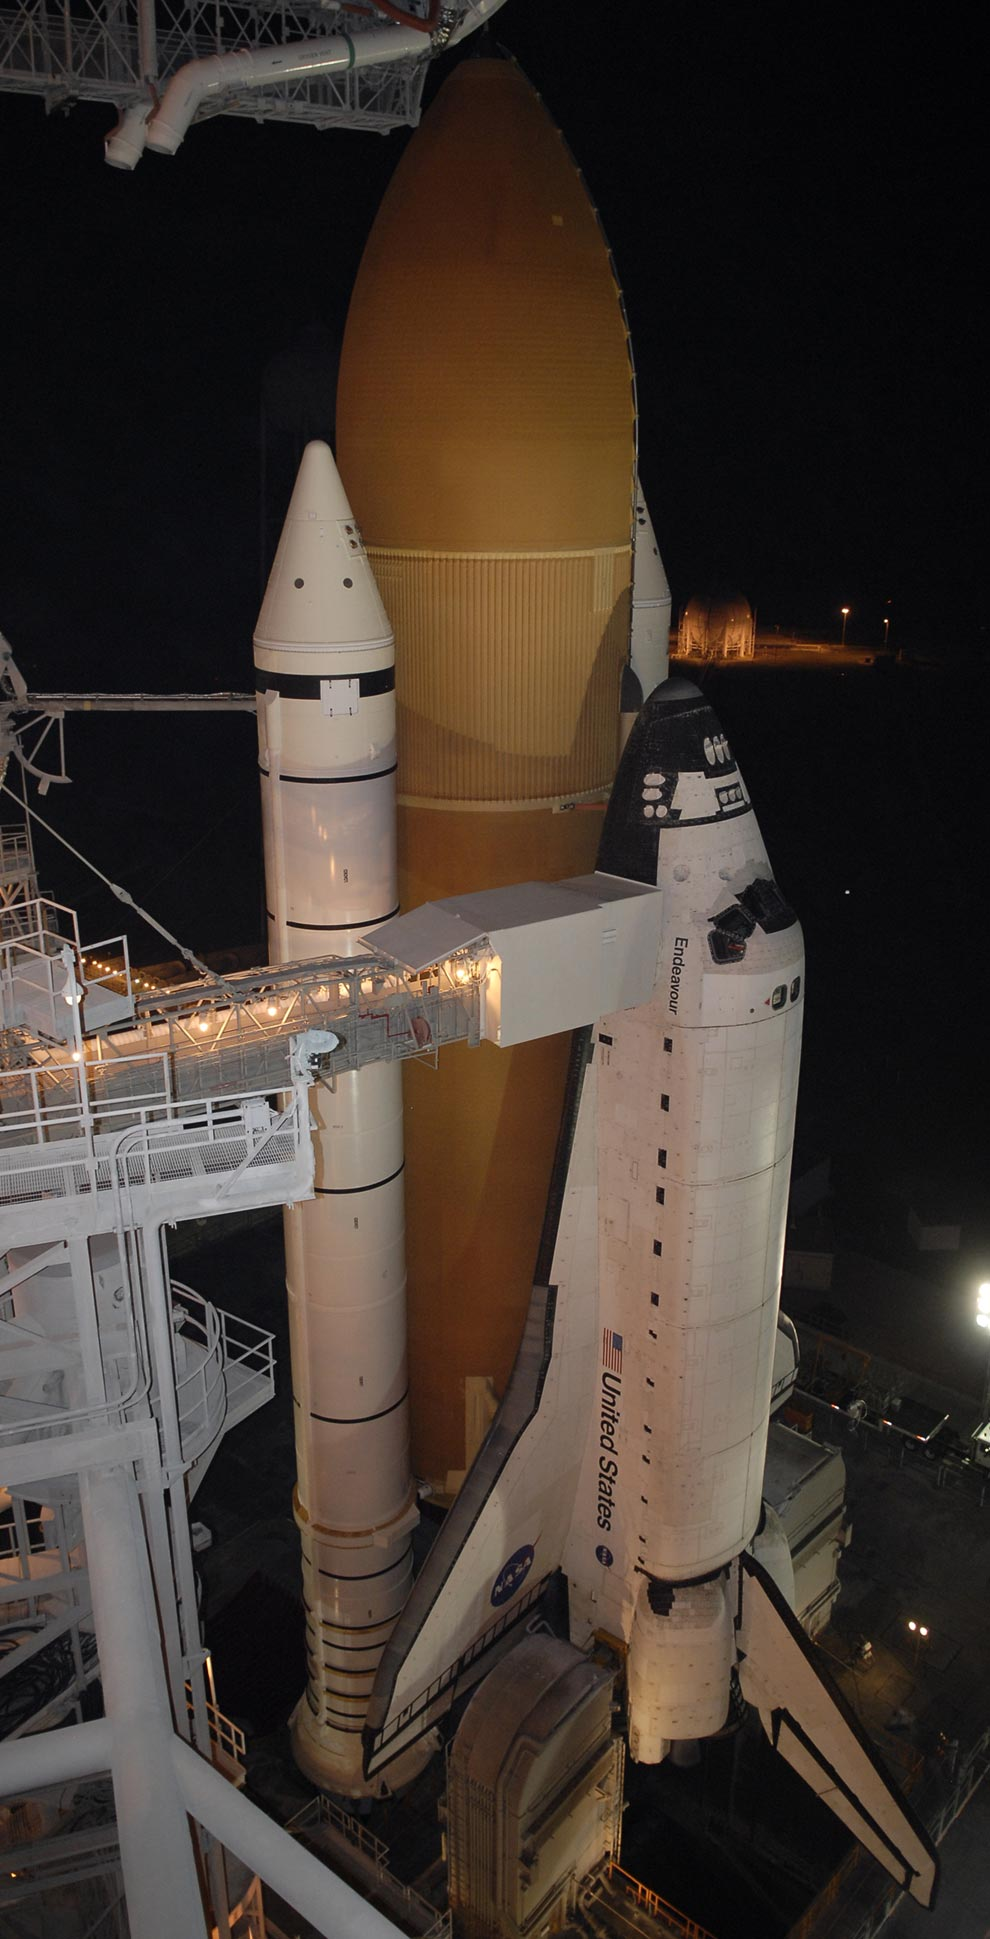 where is endeavour space shuttle right now - photo #4